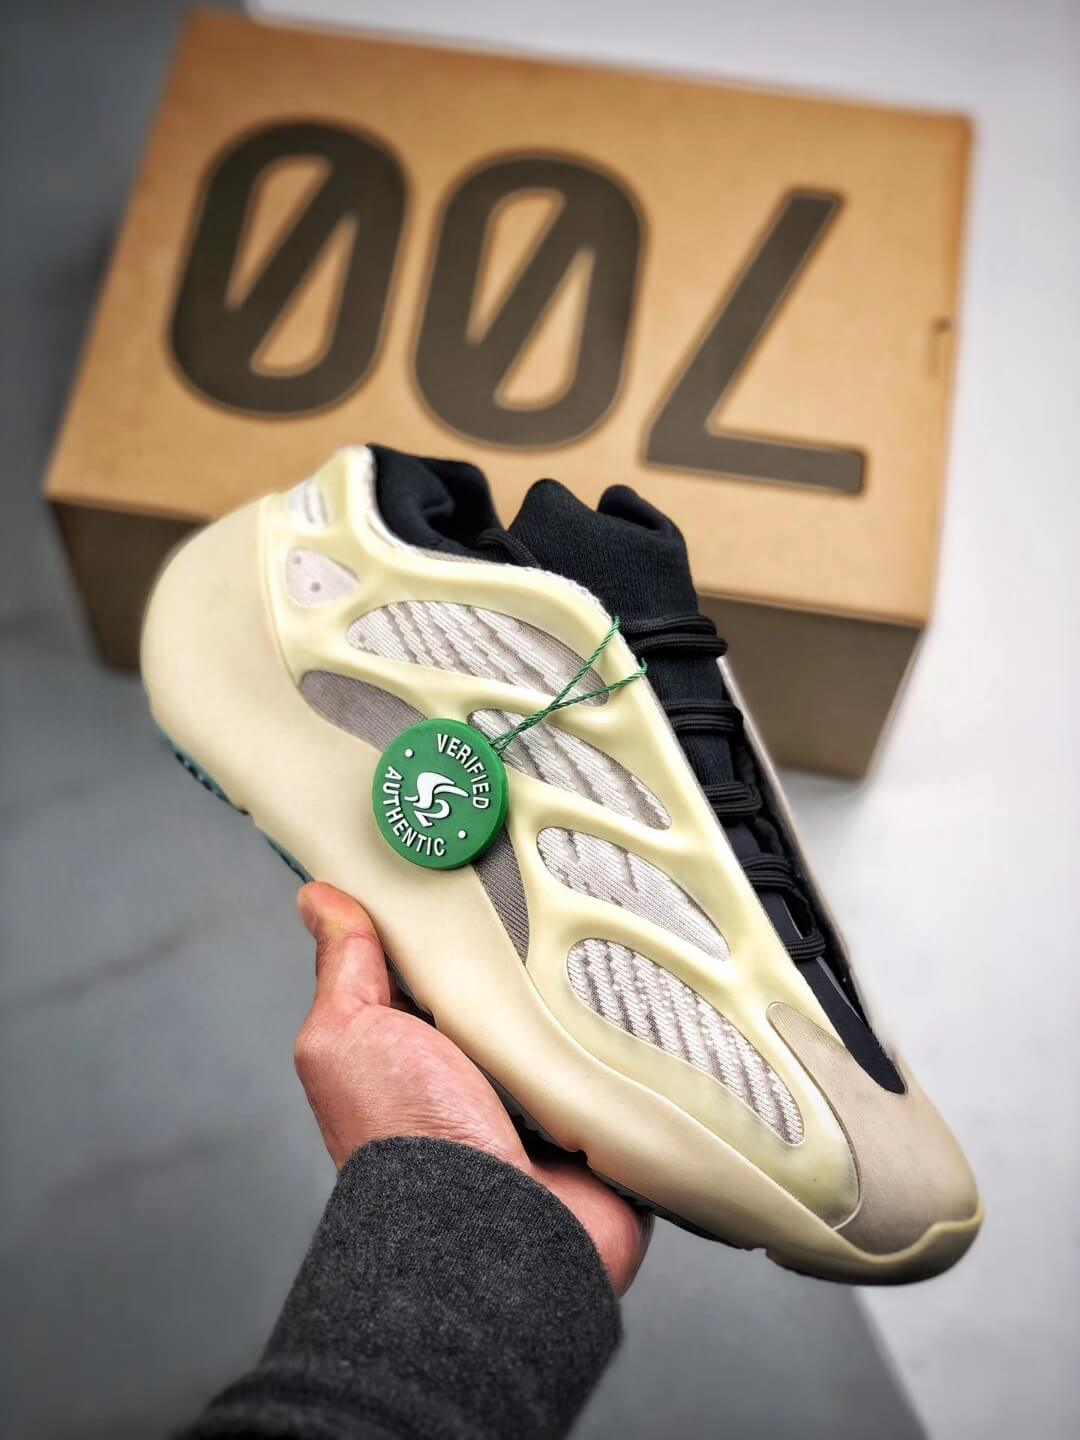 The Adidas Yeezy 700 V3 Azael Reflective Sneaker White Mesh Open Work Upper EVA Outer Sole Top RepSneakers 01